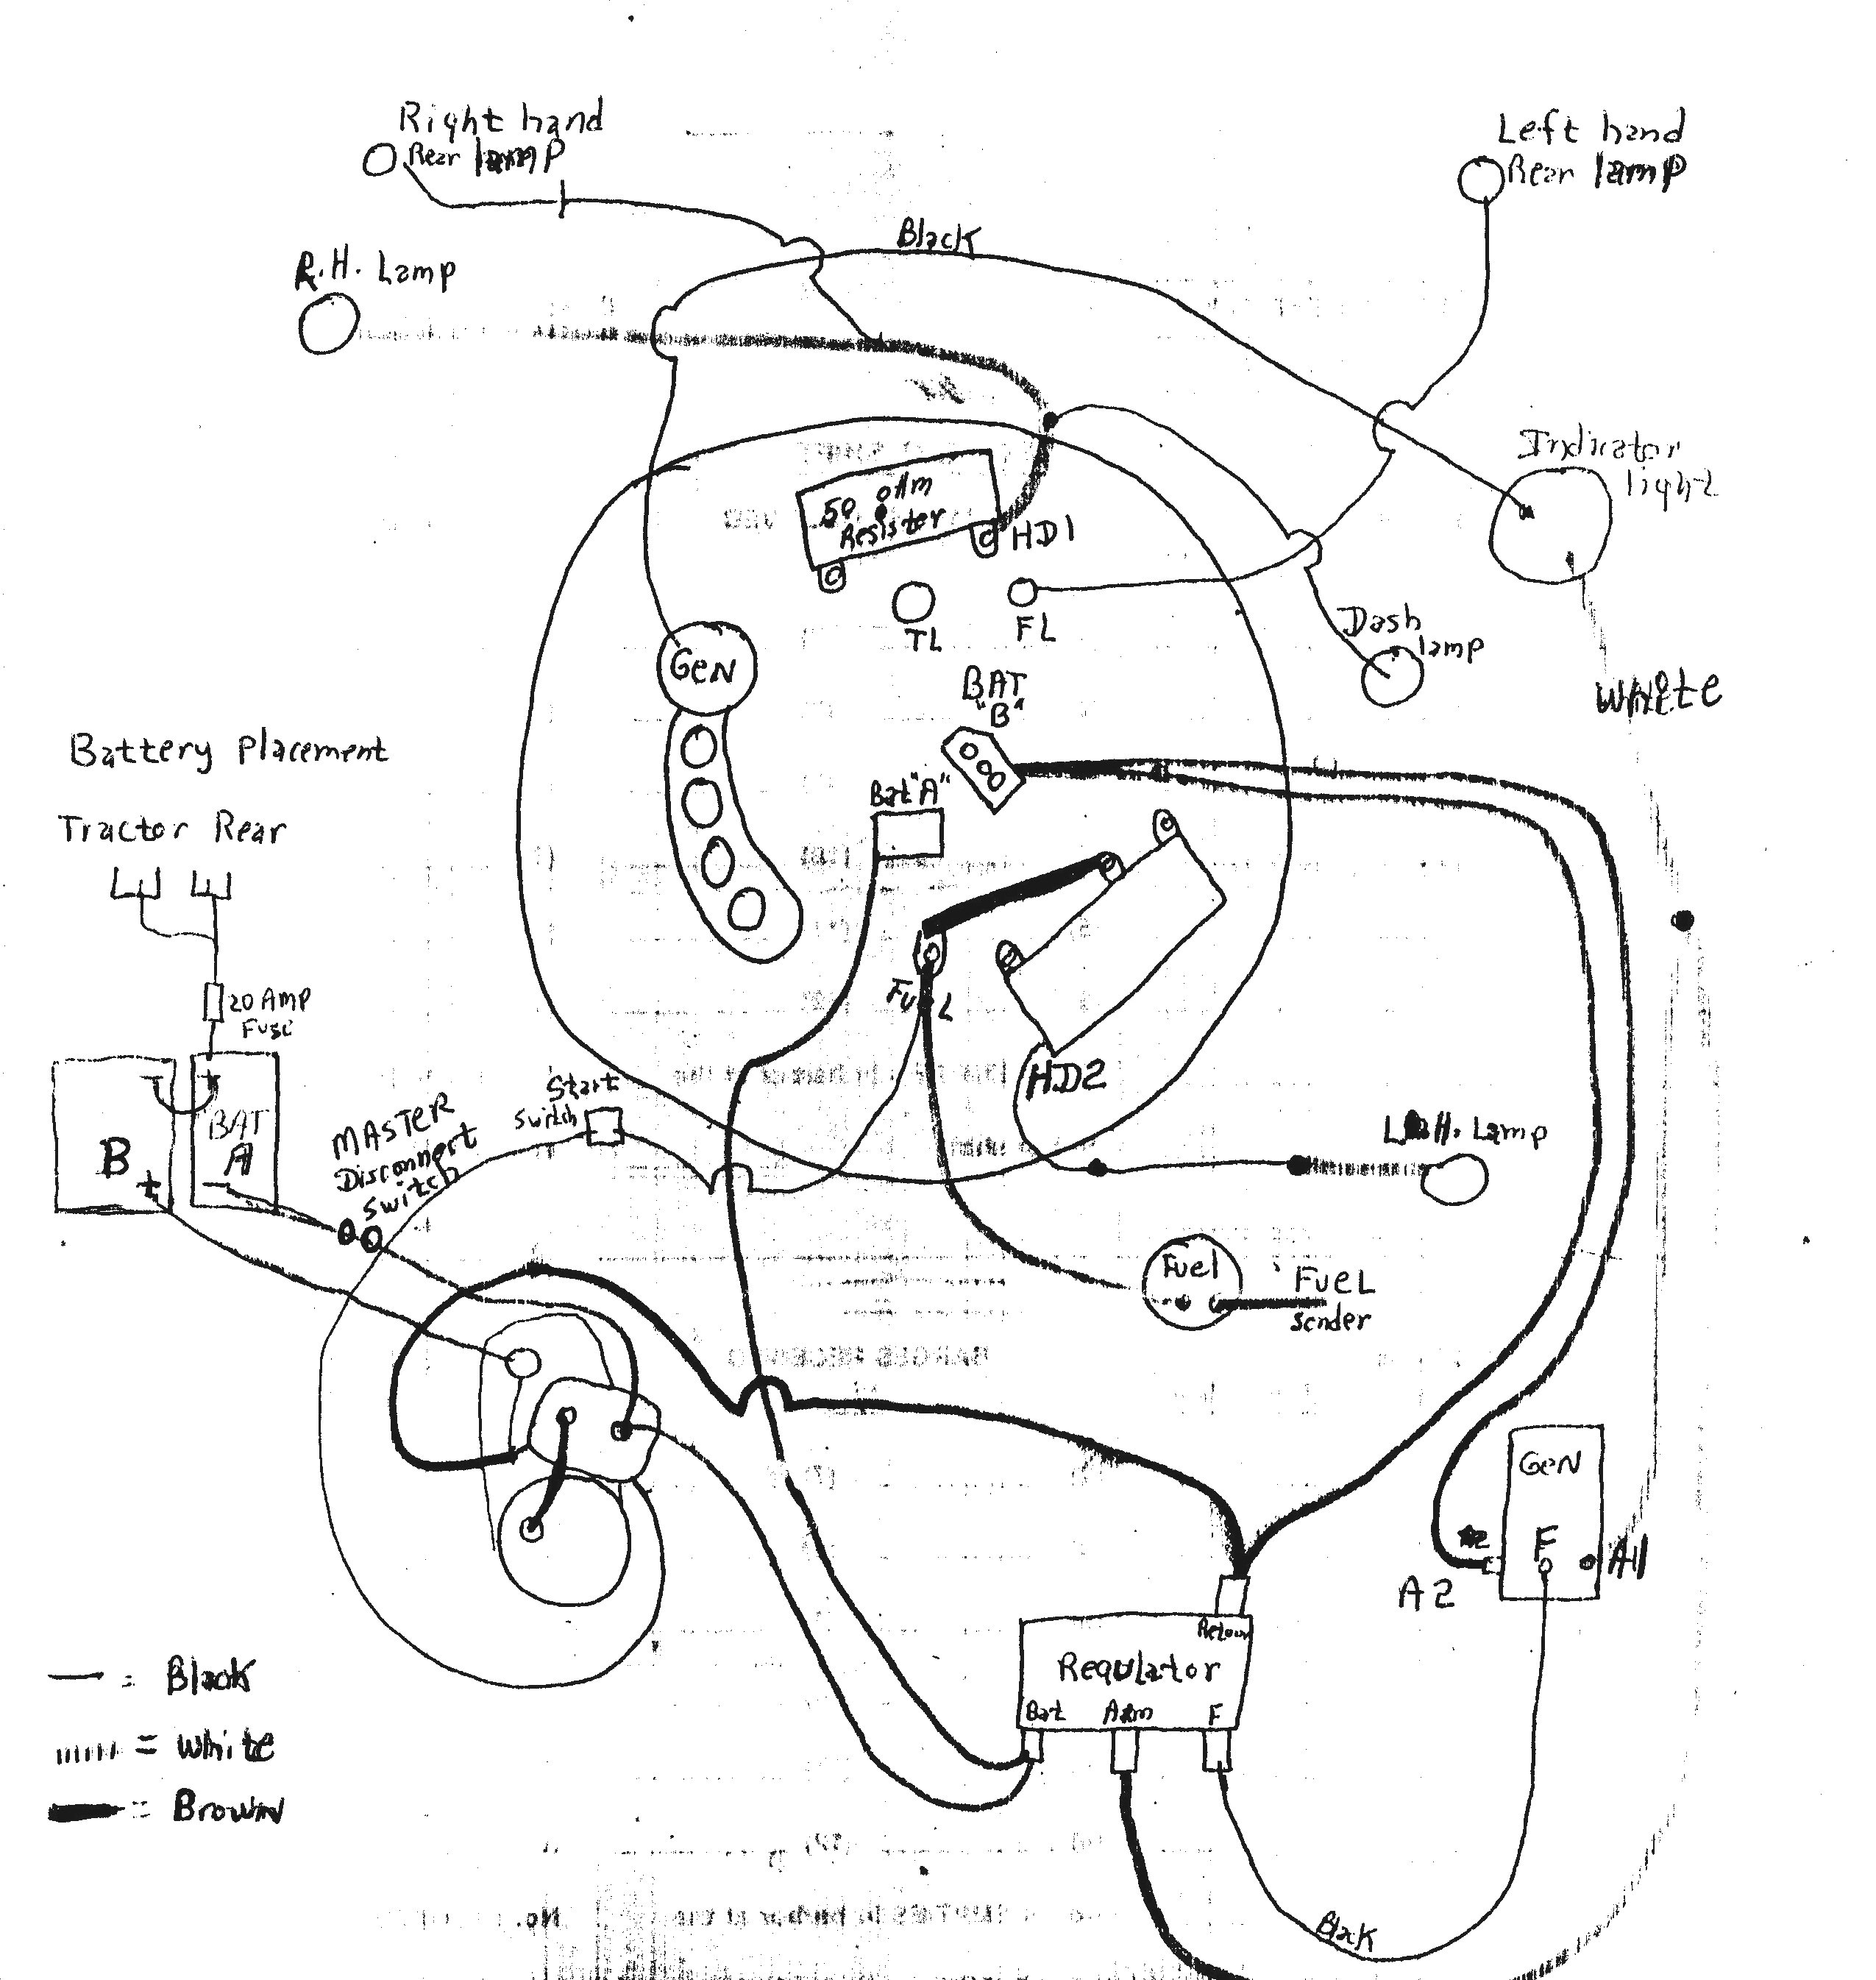 John Deere 425 445 455 Lawn Garden Tractors Technical Manual Pdf Tm1517 besides Wiring Diagram For Case 580c Backhoe in addition Kb Ignition Wiring Diagram Stx38 Tractor additionally T25100513 Replace john deere mower transmission besides Ford Starter Solenoid Wiring Diagram Agriculture Tractors. on wiring diagram for a john deere 110